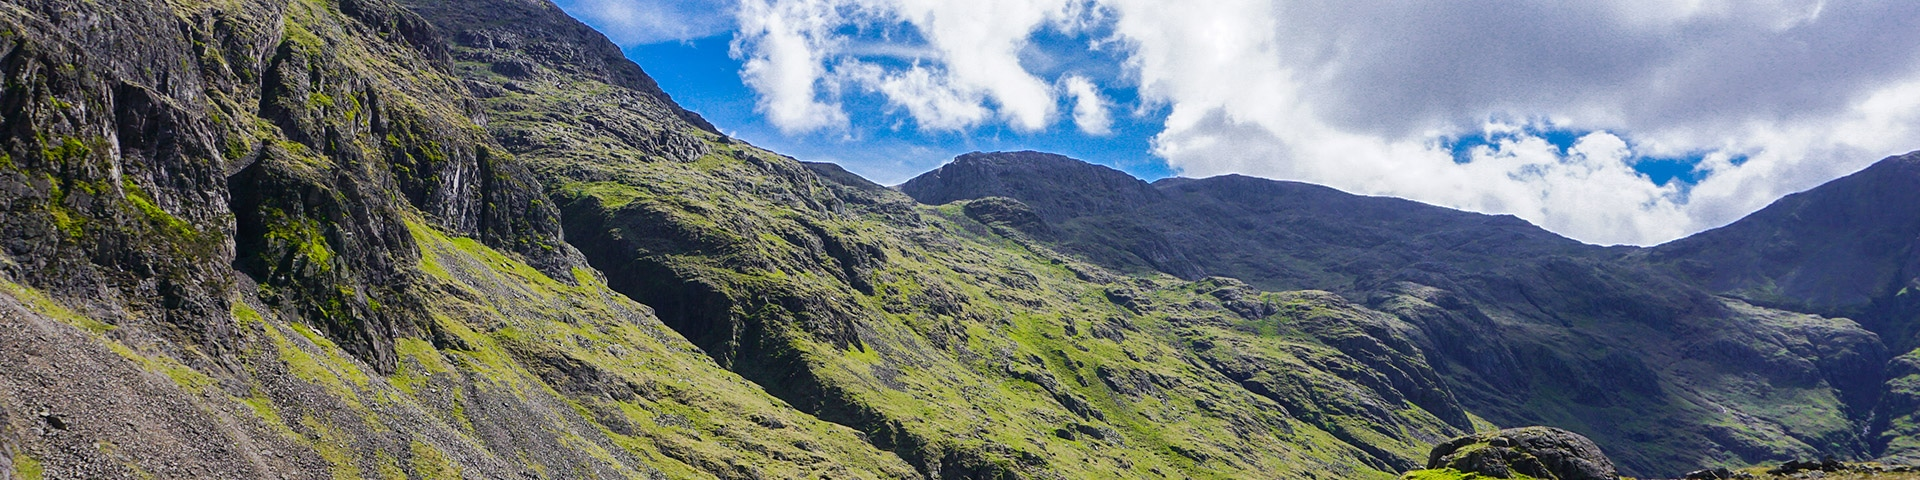 Panorama from the Scafell Pike hike in Lake District, England